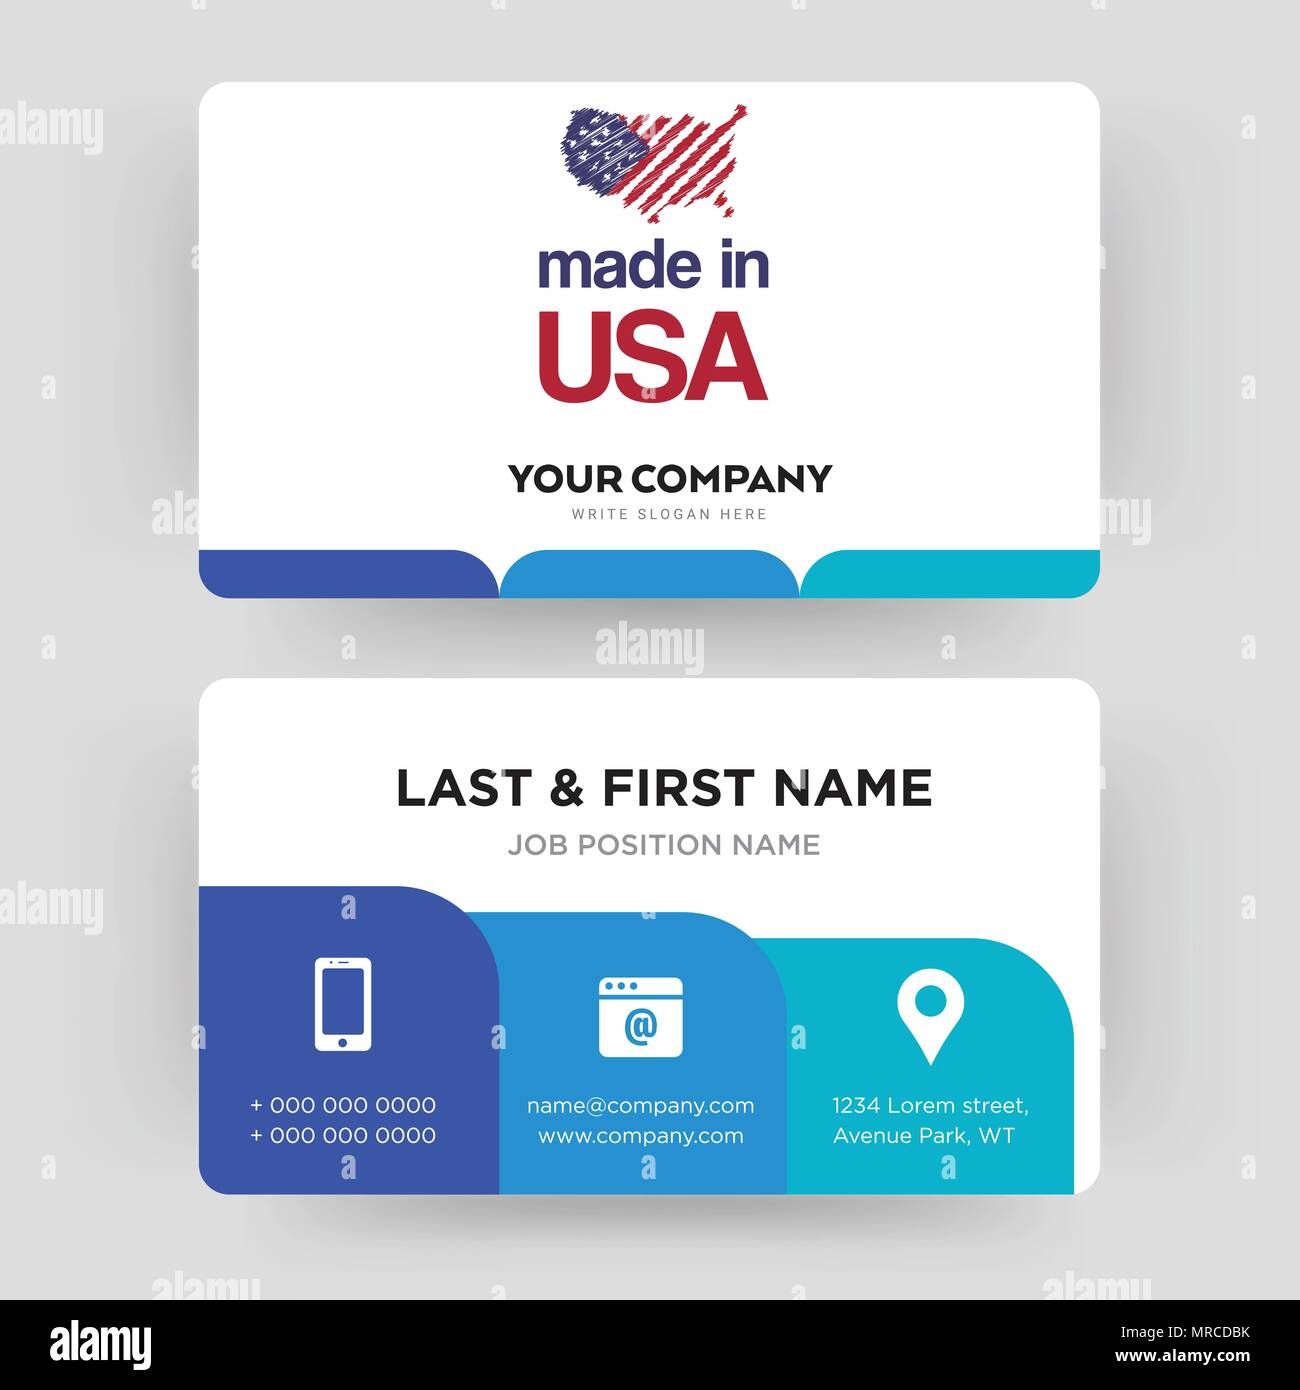 Made In Usa Business Card Design Template Visiting For Your